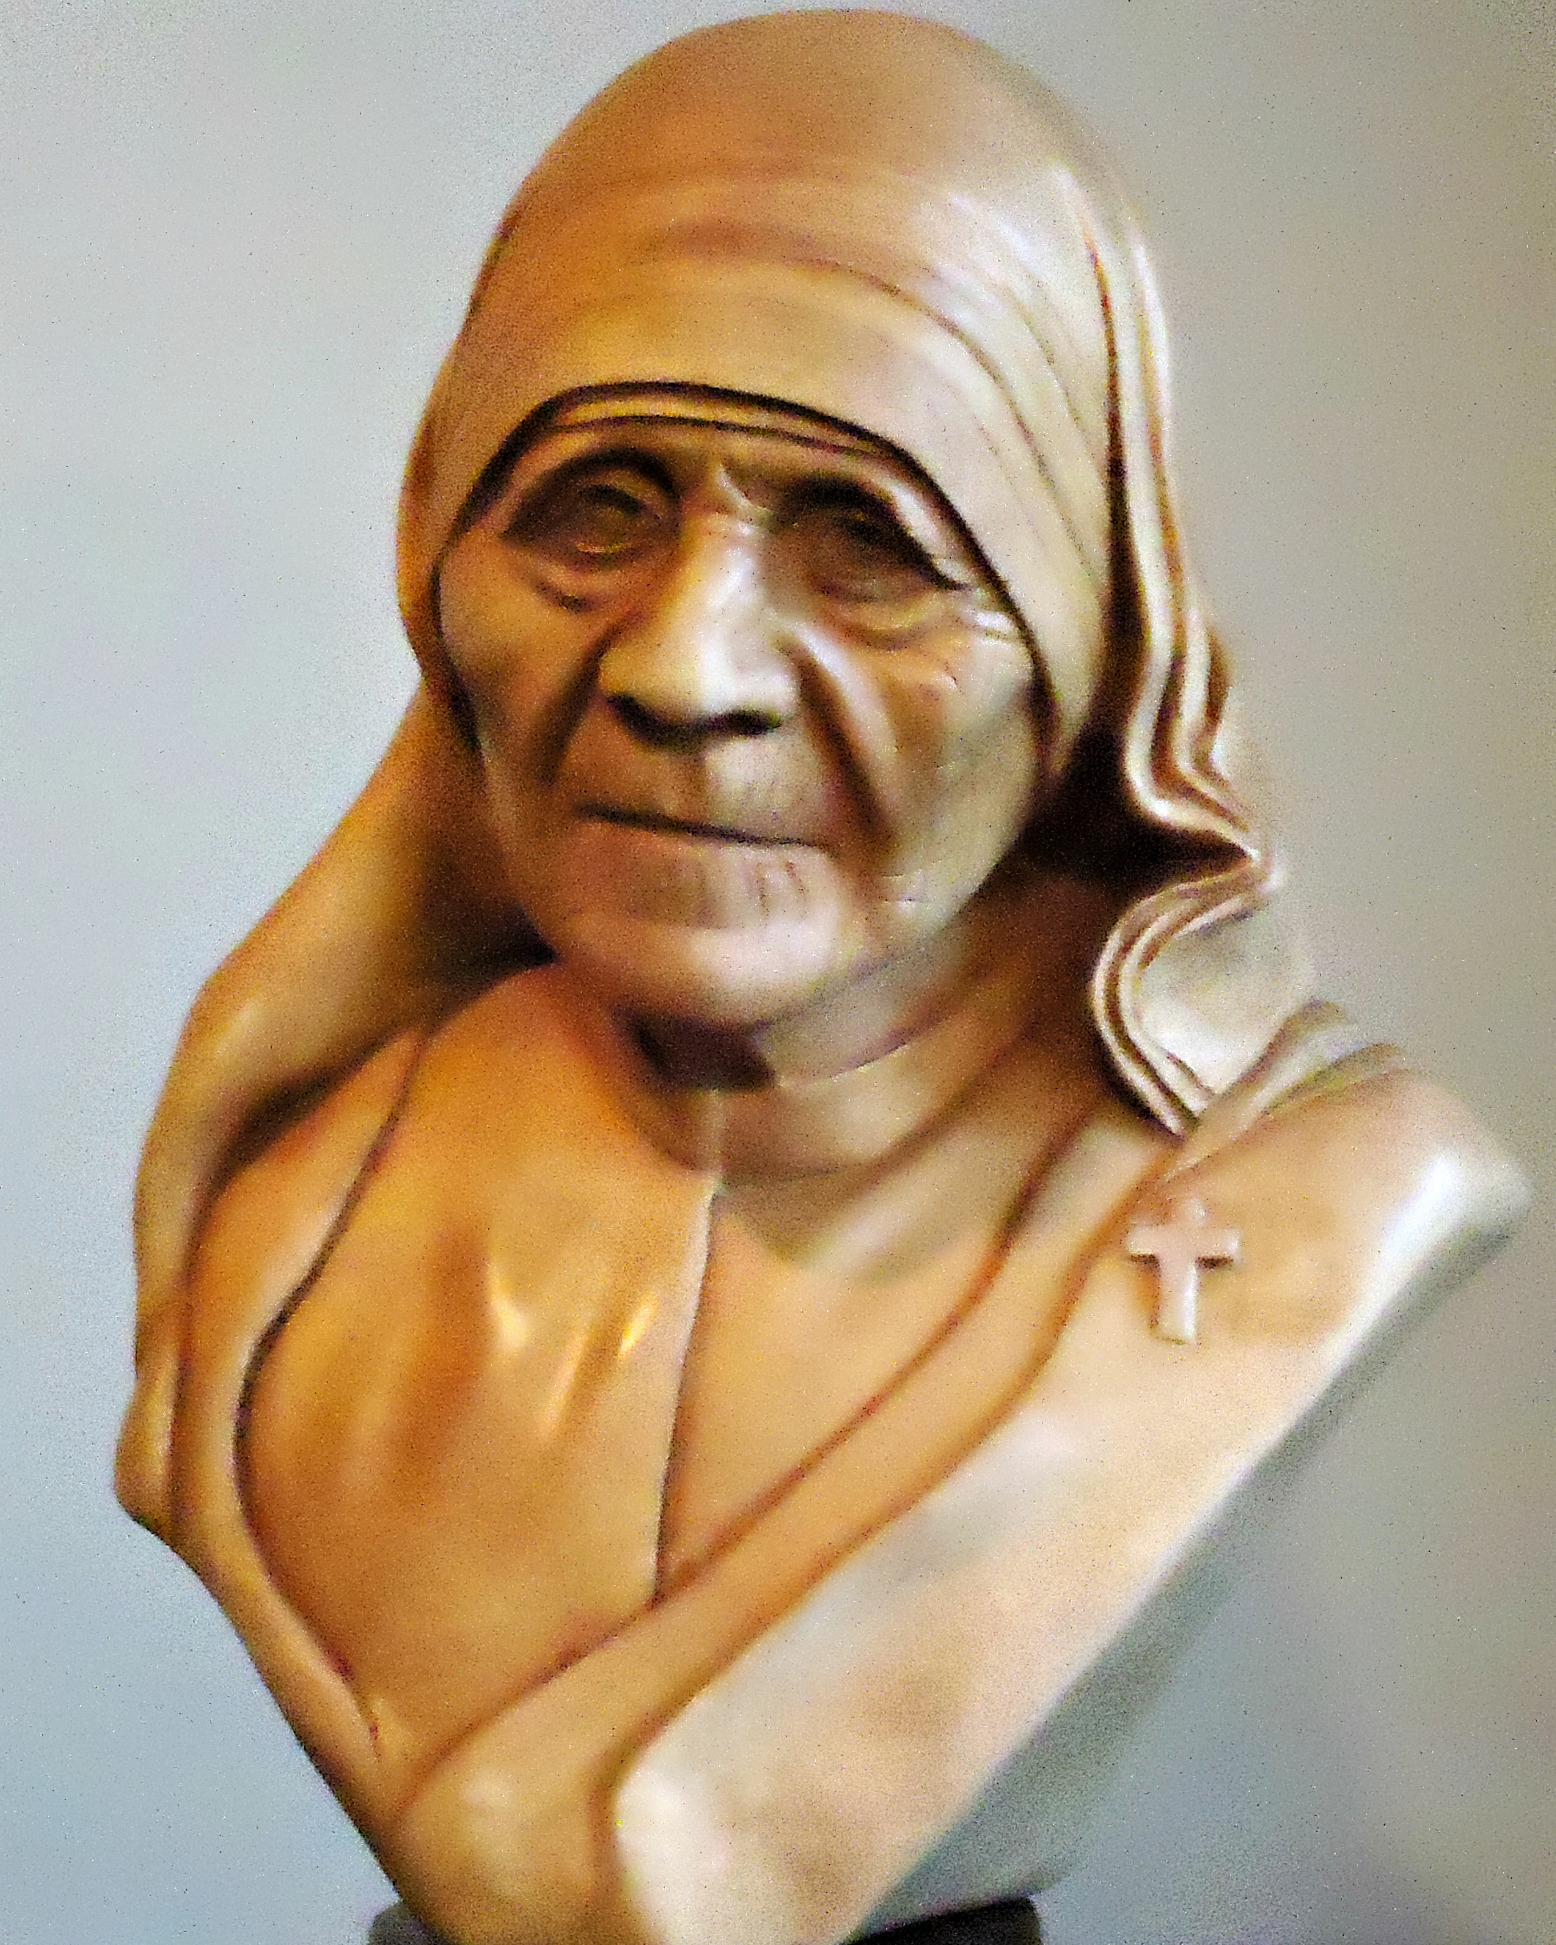 Mother Theresa 1 Maureen Laxpati Wood Carving